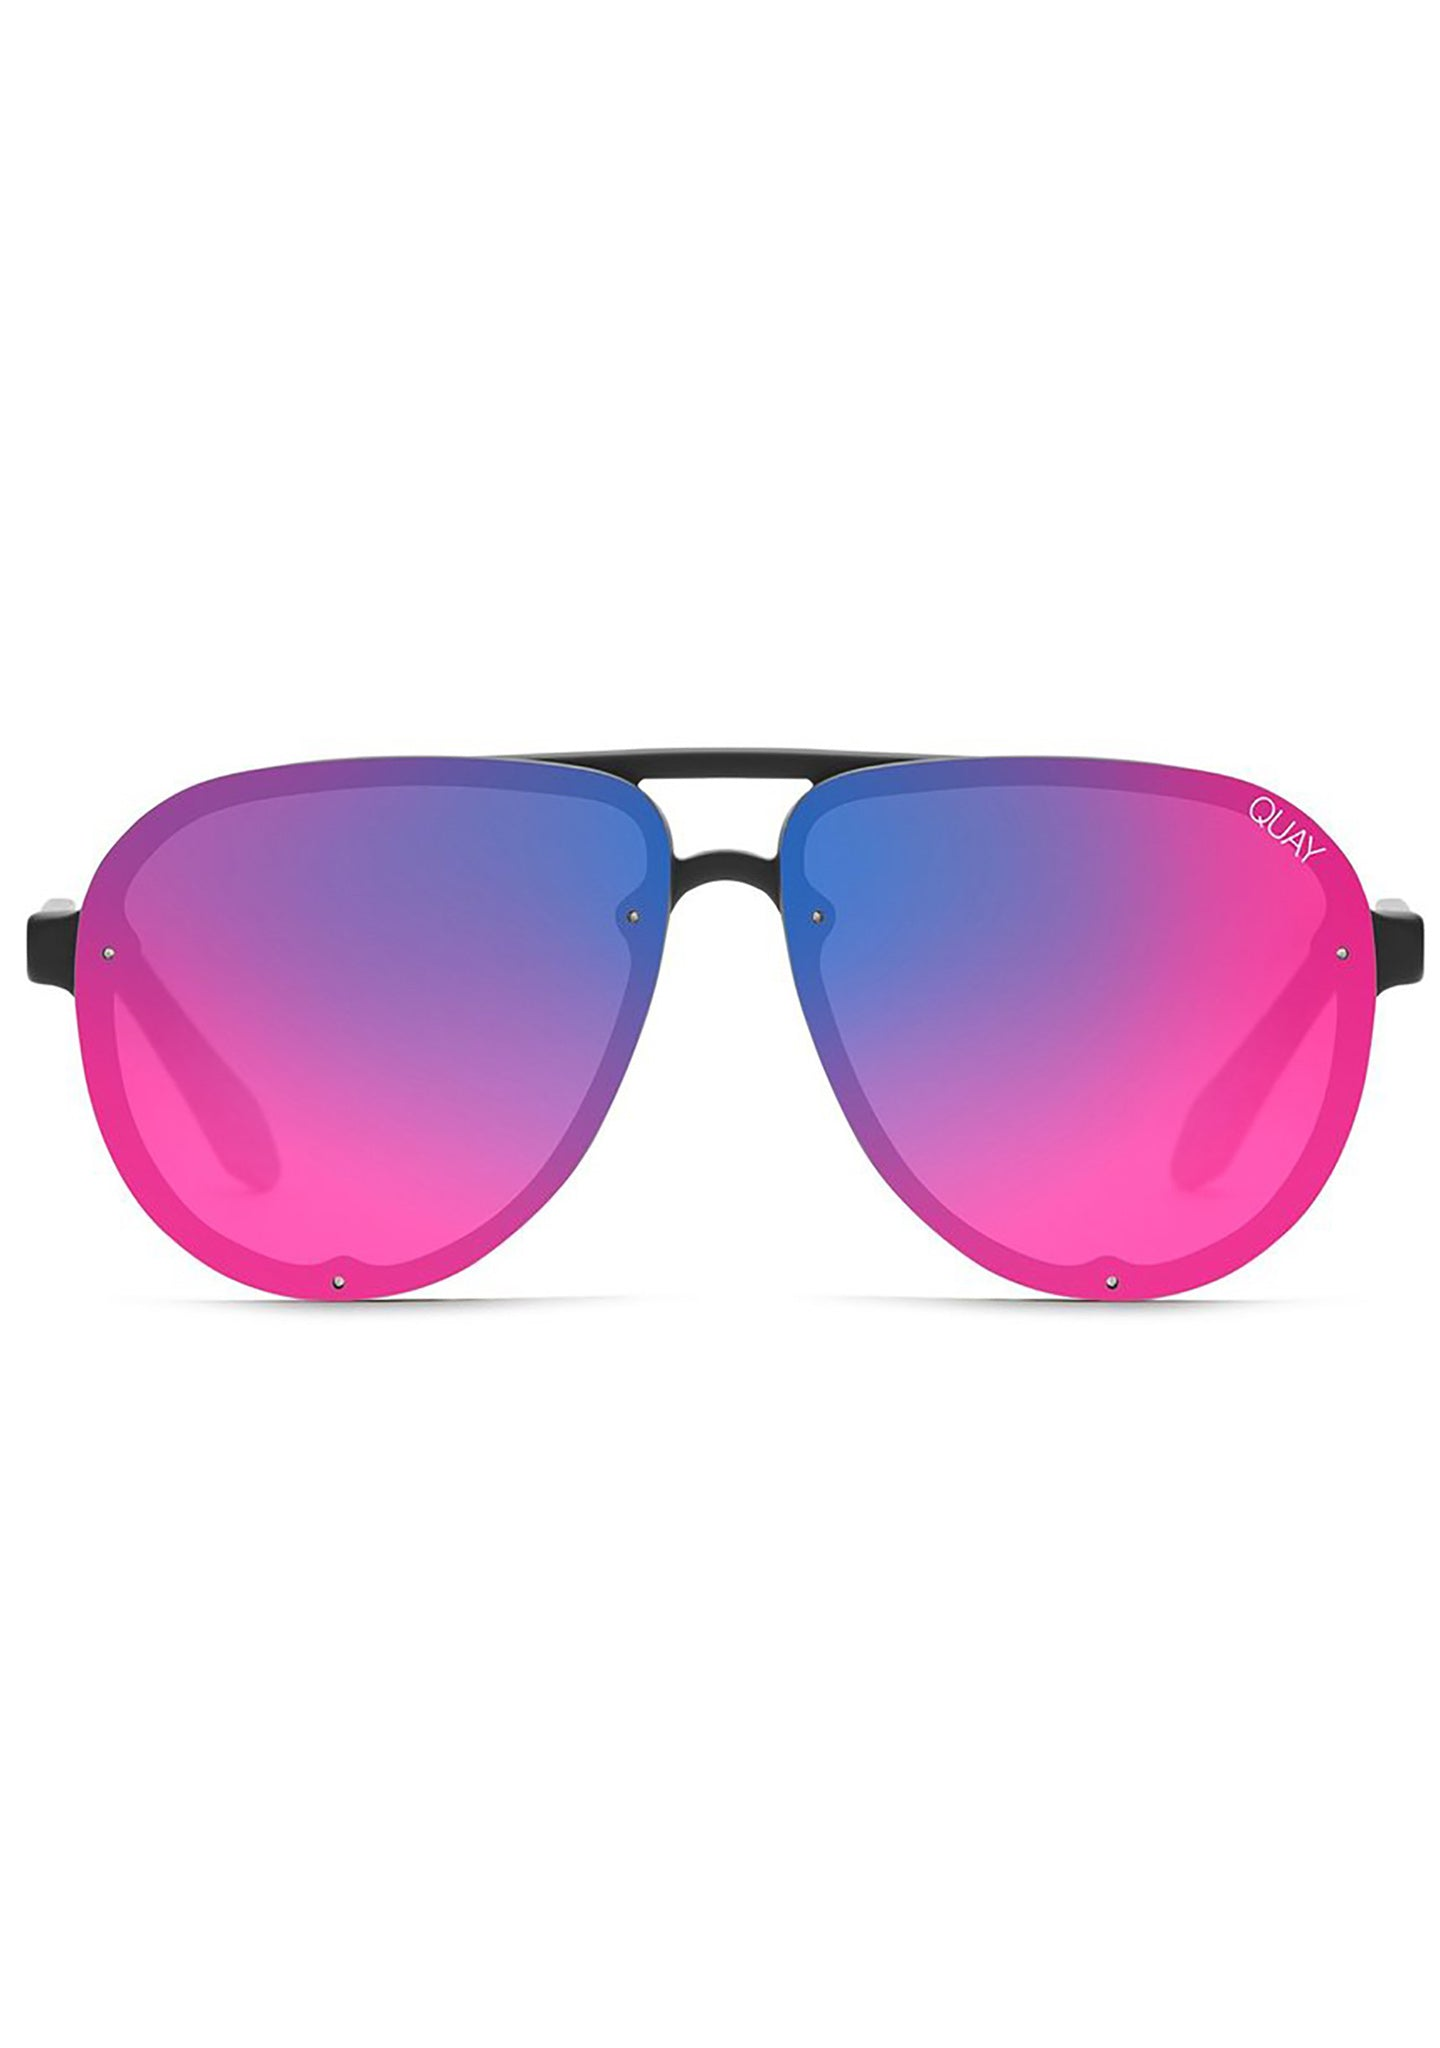 Tricky Sunglasses in Black/Pink